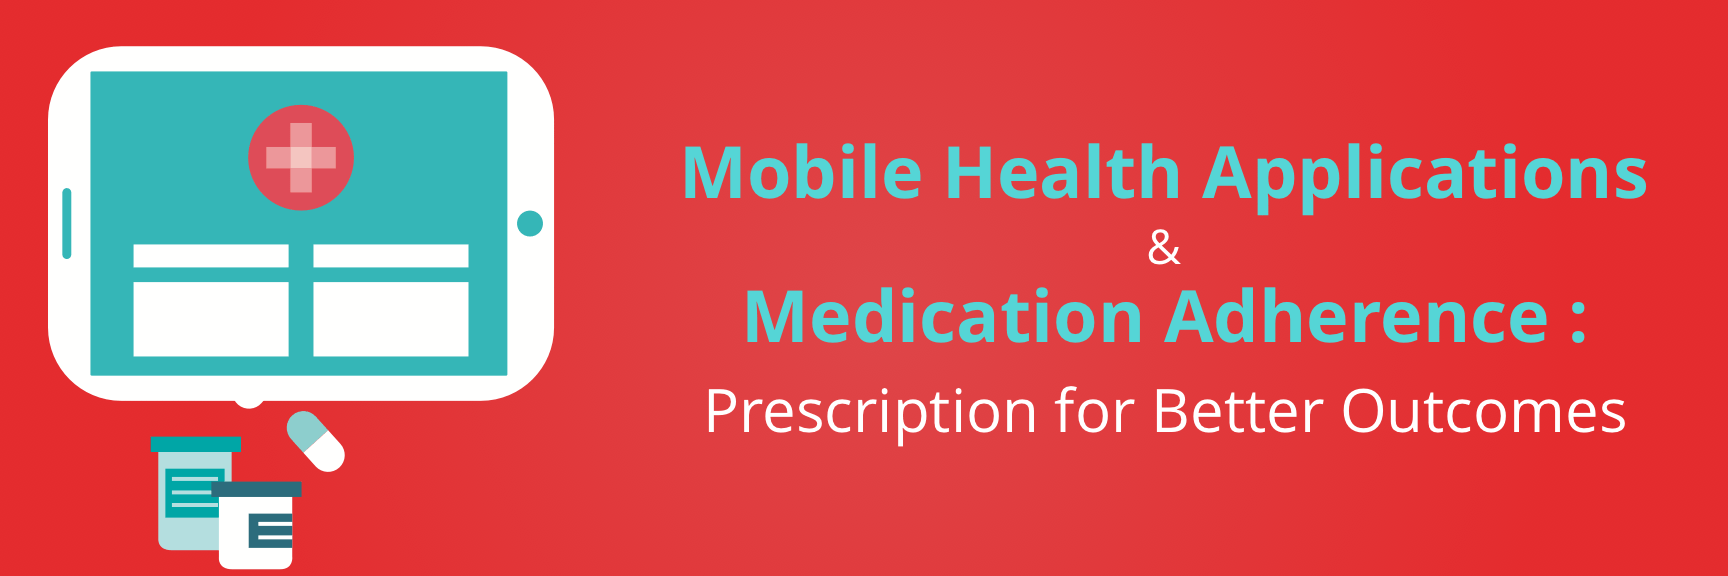 mhealth apps: Solution to increasing healthcare cost & decreasing adherence